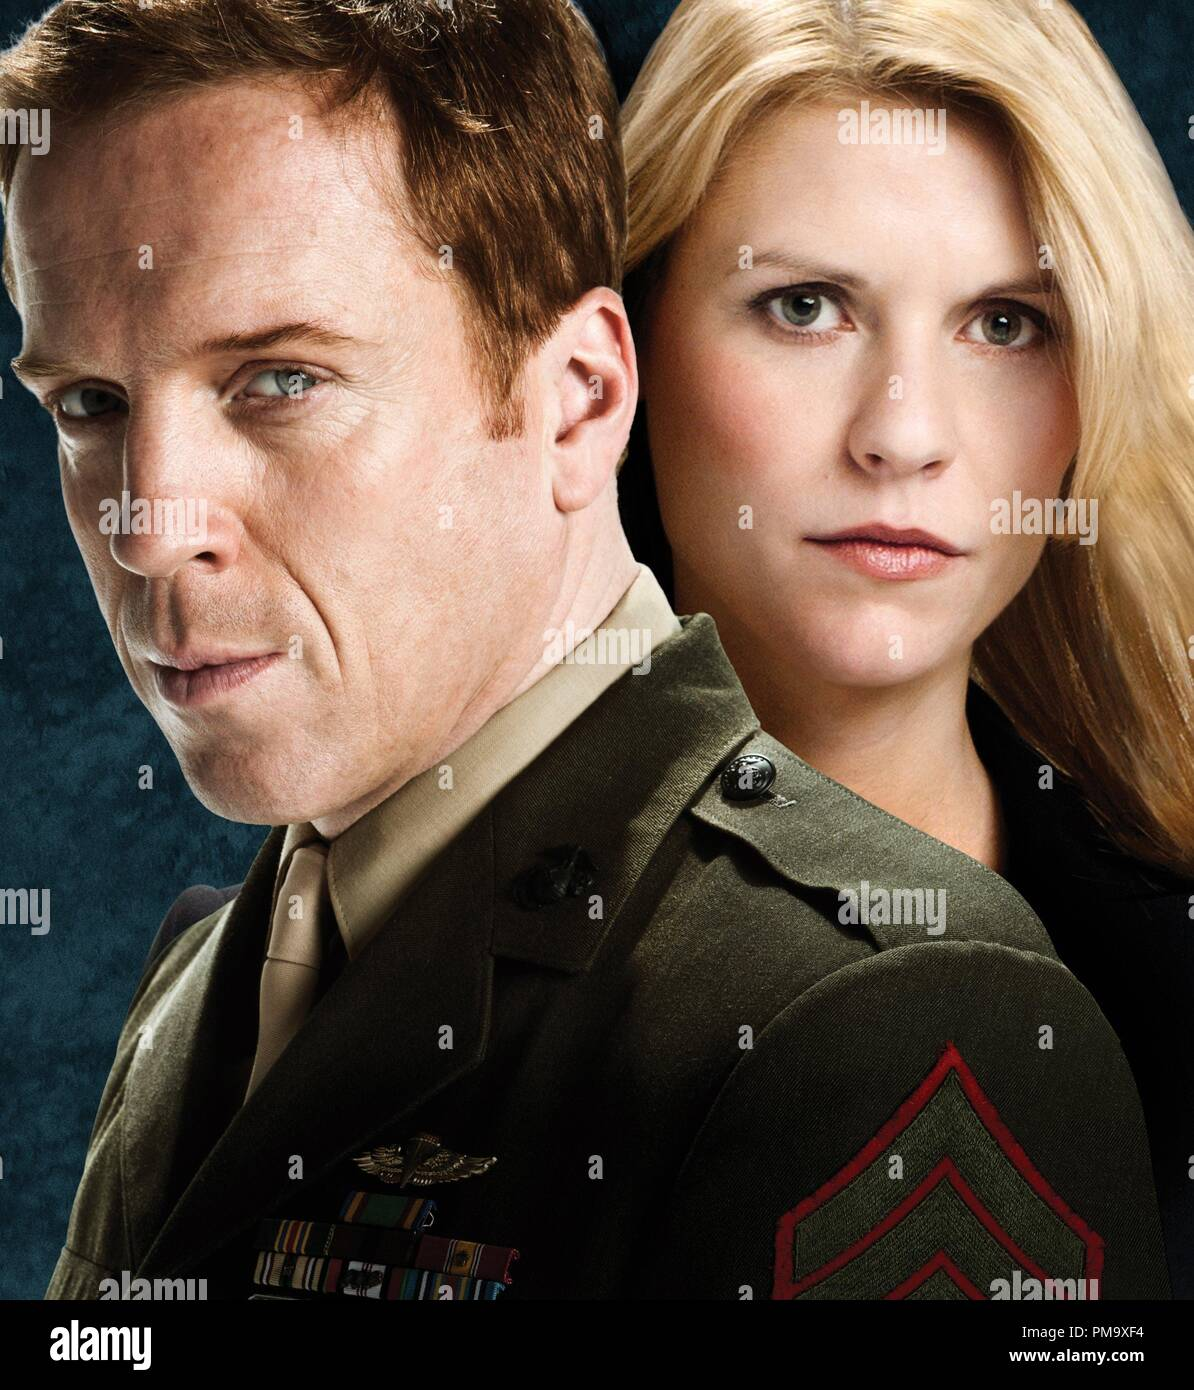 Claire Danes and Damian Lewis 'Homeland' Season 1 (2011) - Stock Image